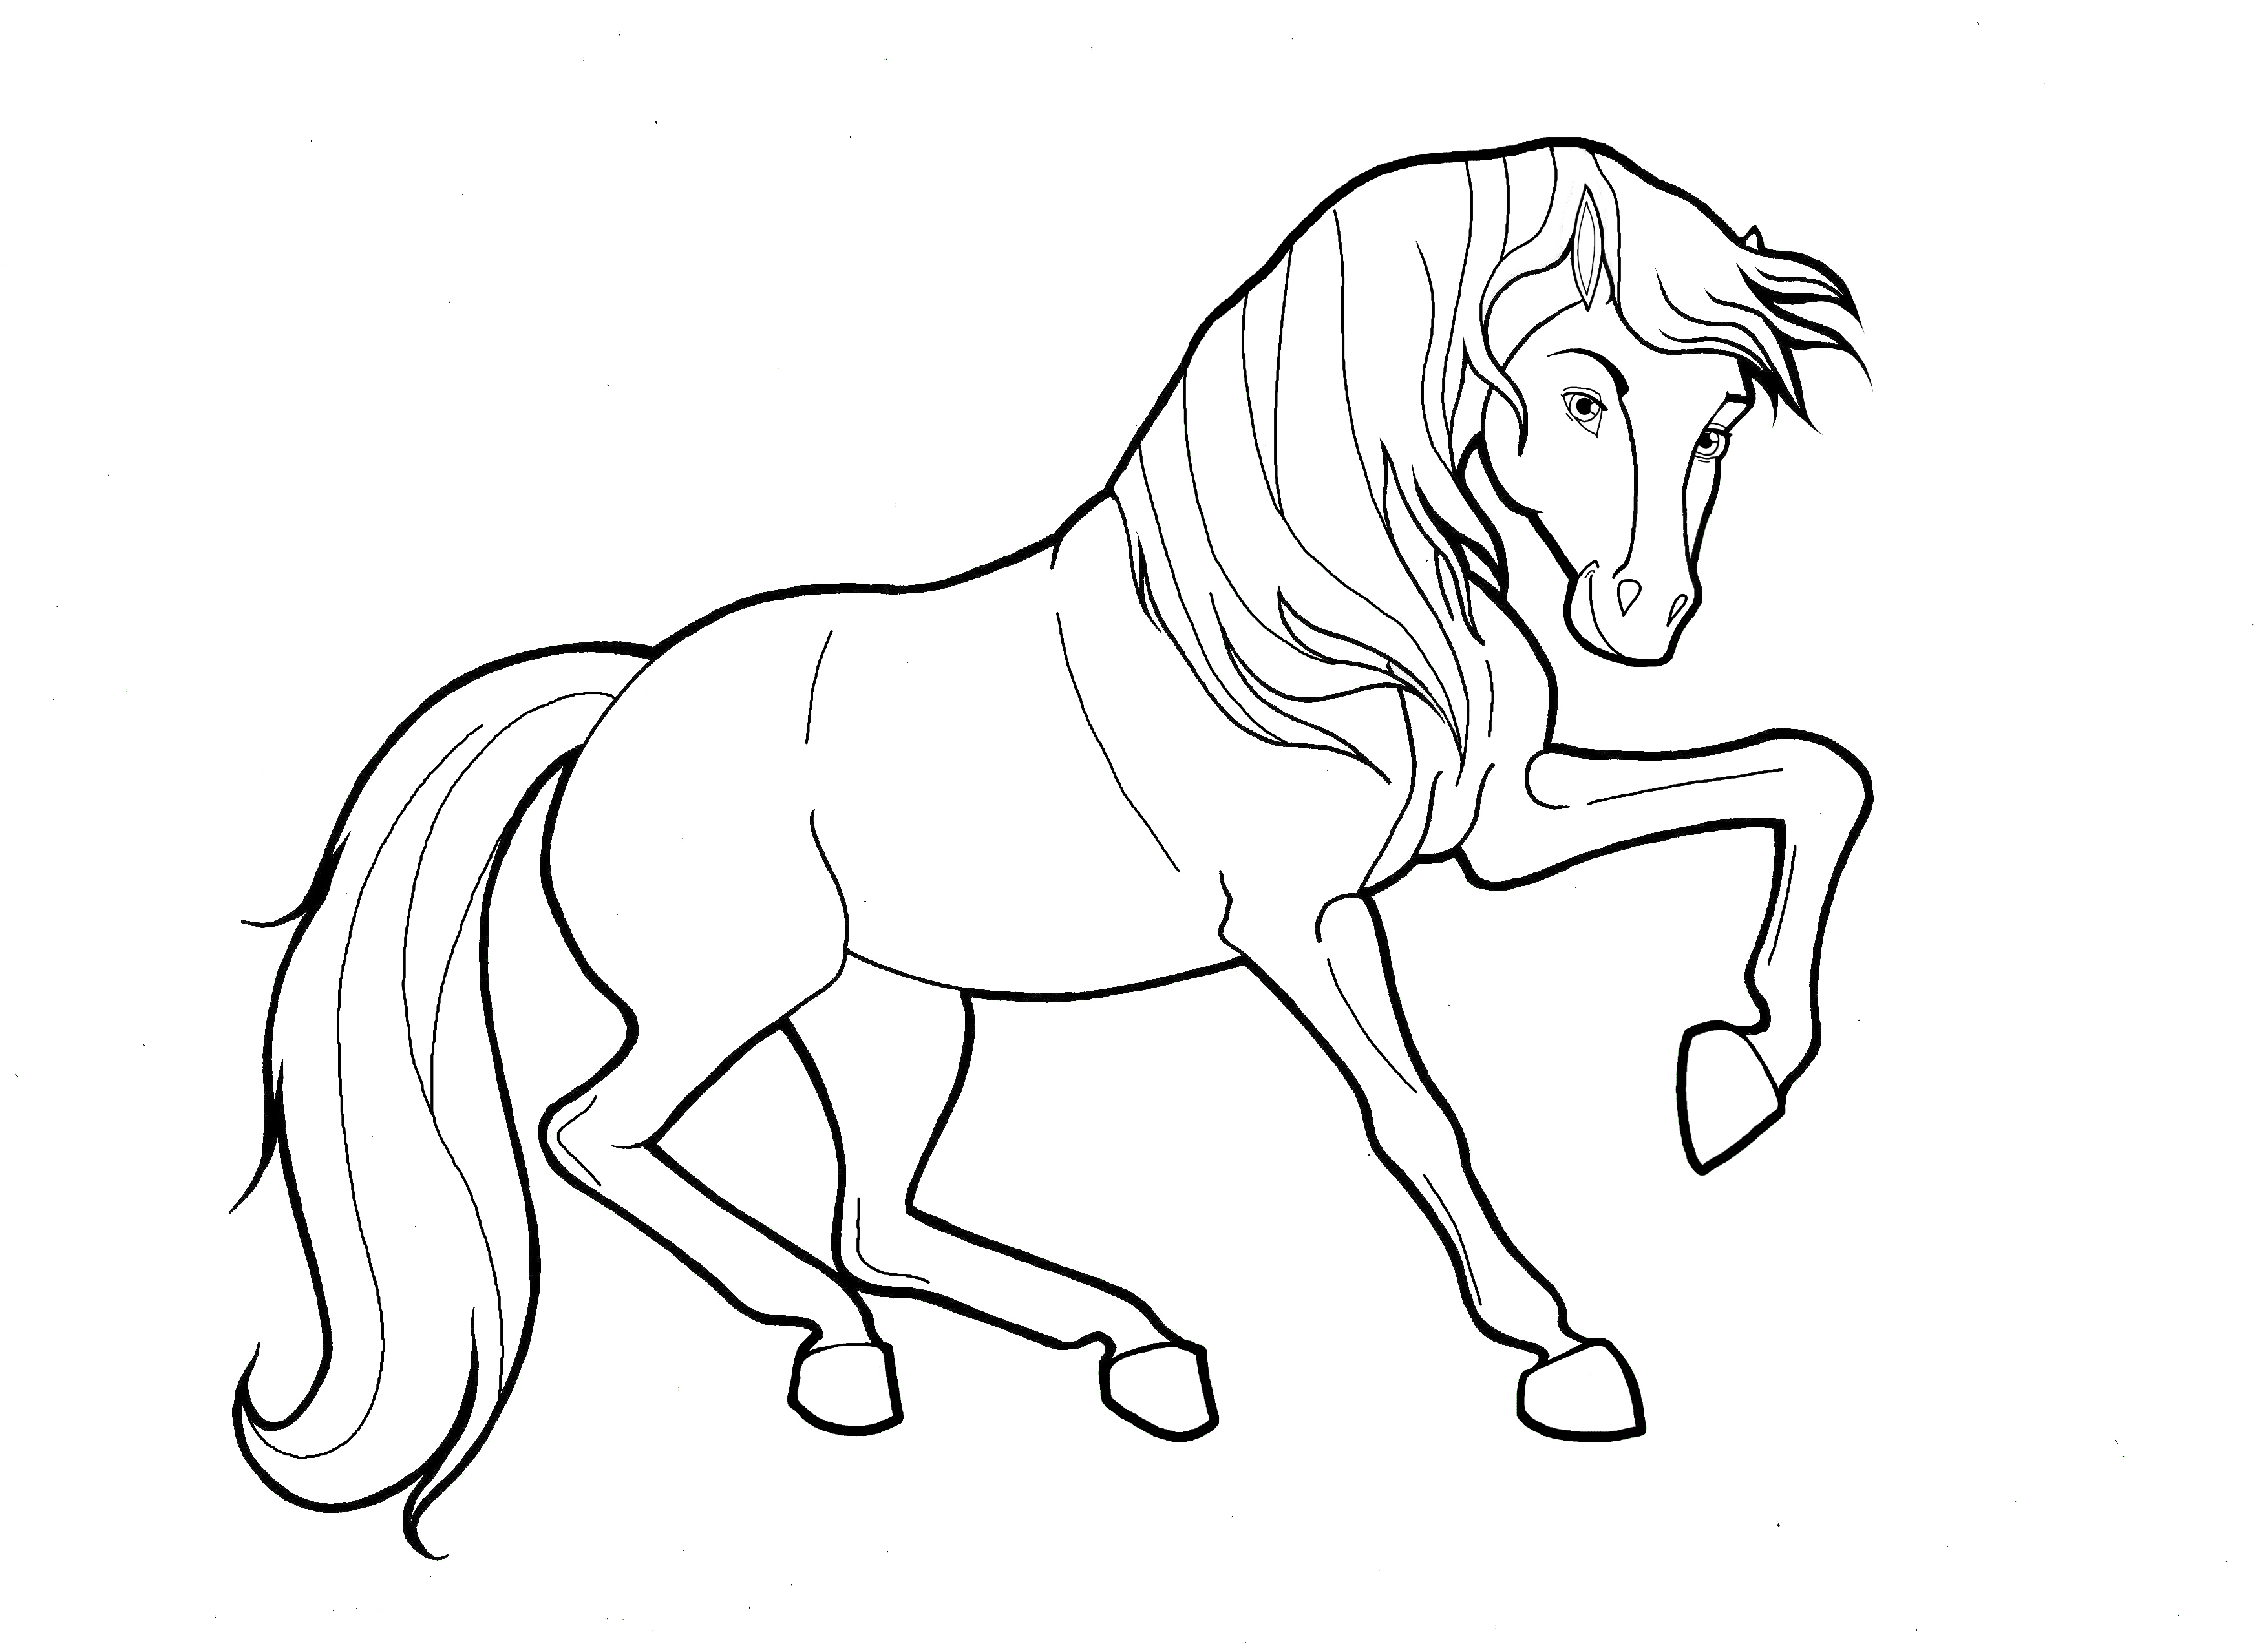 horses to print and color coloring pages of horses printable free coloring sheets horses and print color to